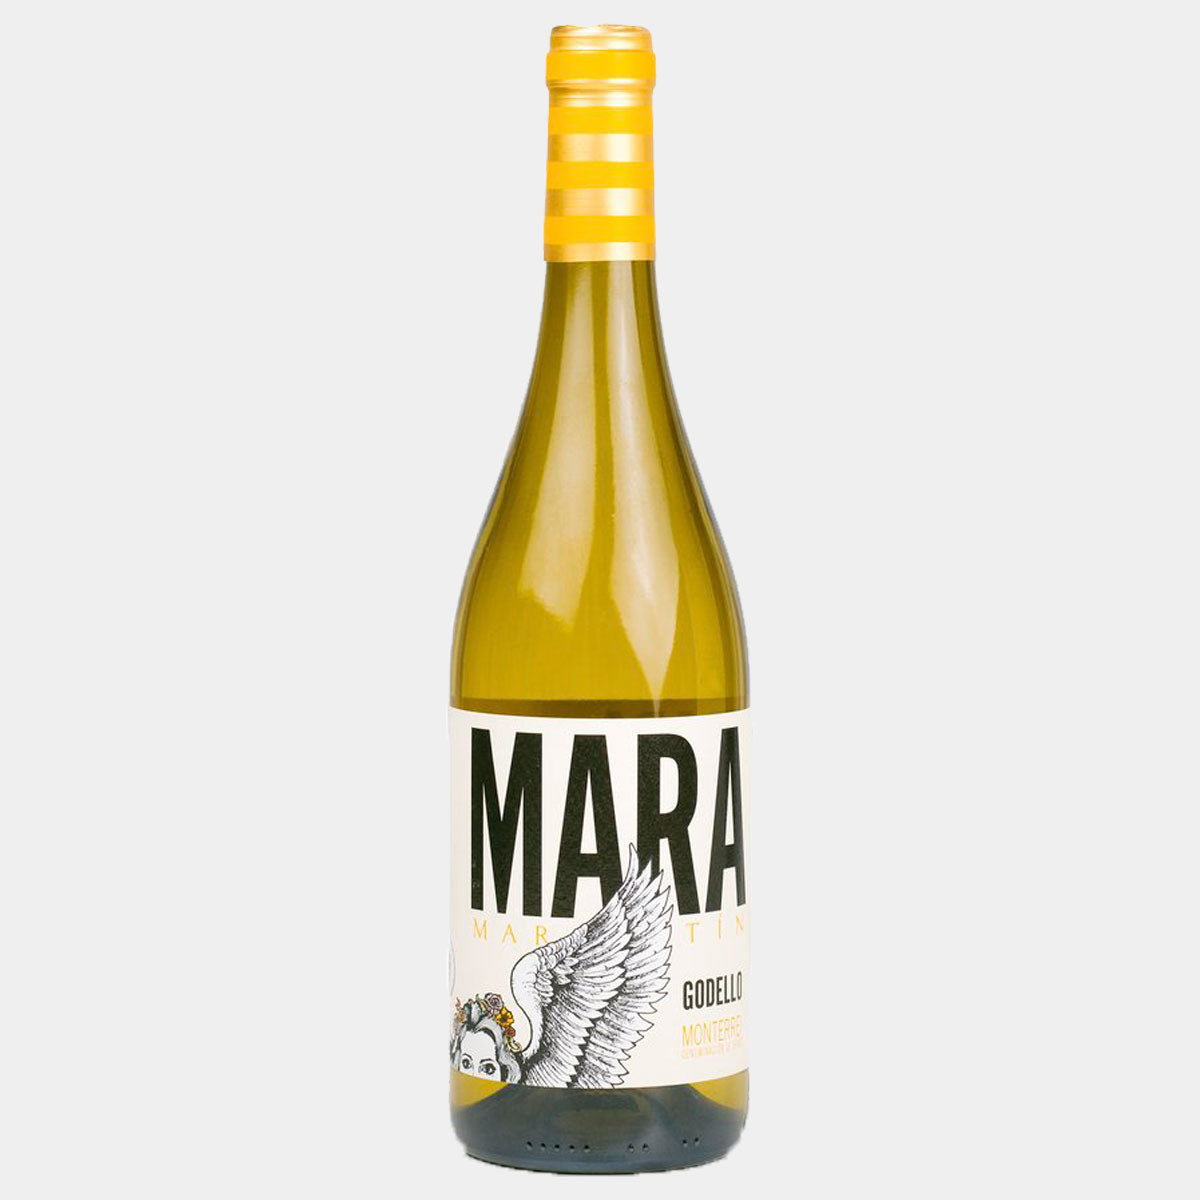 Mara Martín Godello - Wines and Copas Barcelona